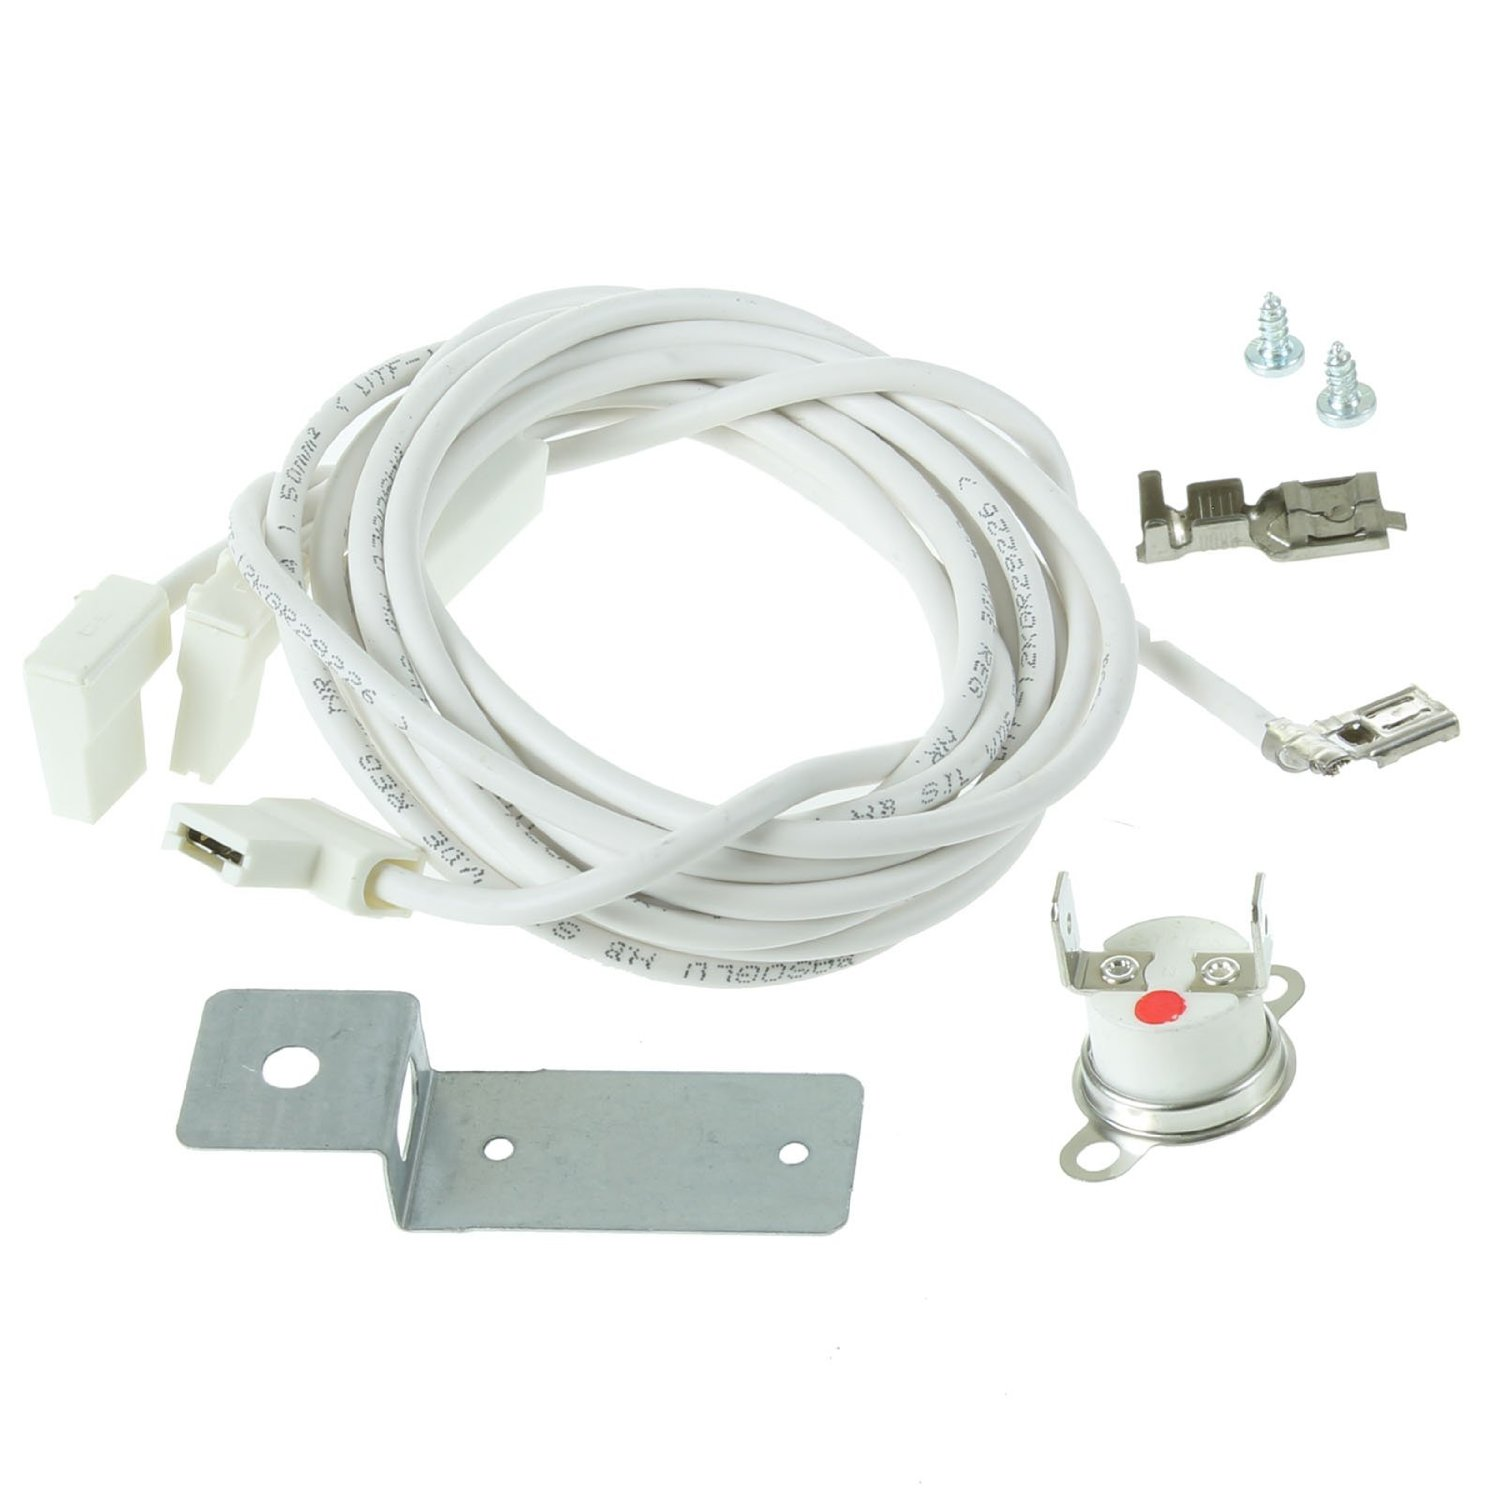 Bi- Metal Thermal Cut-Off | Bi-Metal Thermal Cut-Out and CablesPlease make sure that you replace the original wiring with what is supplied with this part. | Part No:4410101001